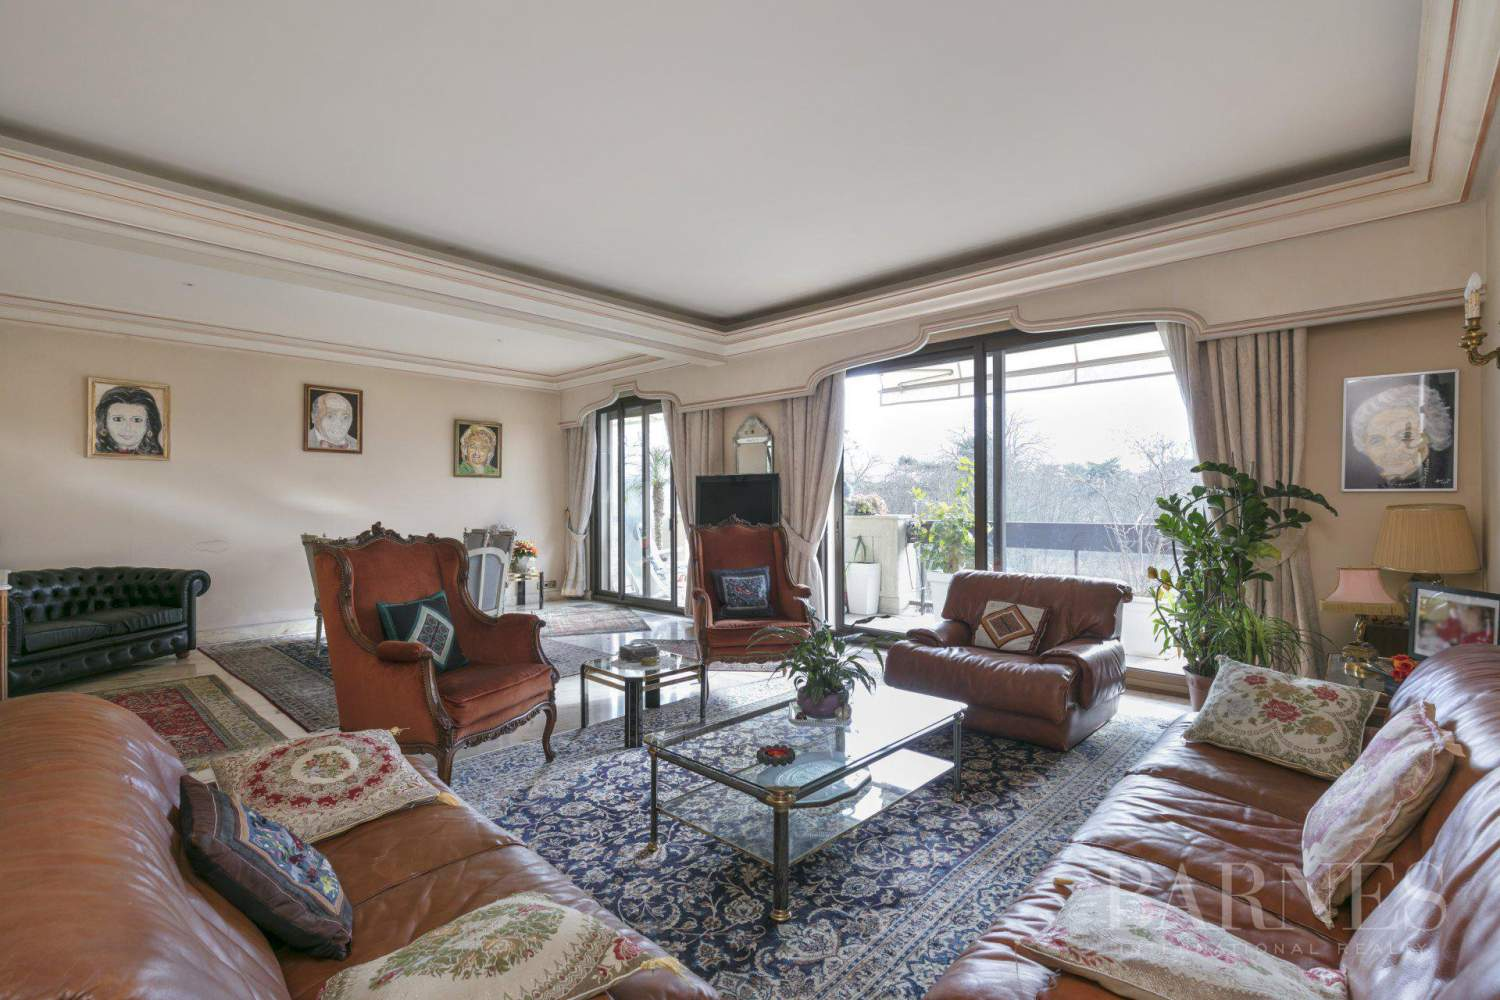 NEUILLY - BOIS - APPARTEMENT 5 PIECES - BALCONS LARGES - VUES PANORAMIQUES picture 2